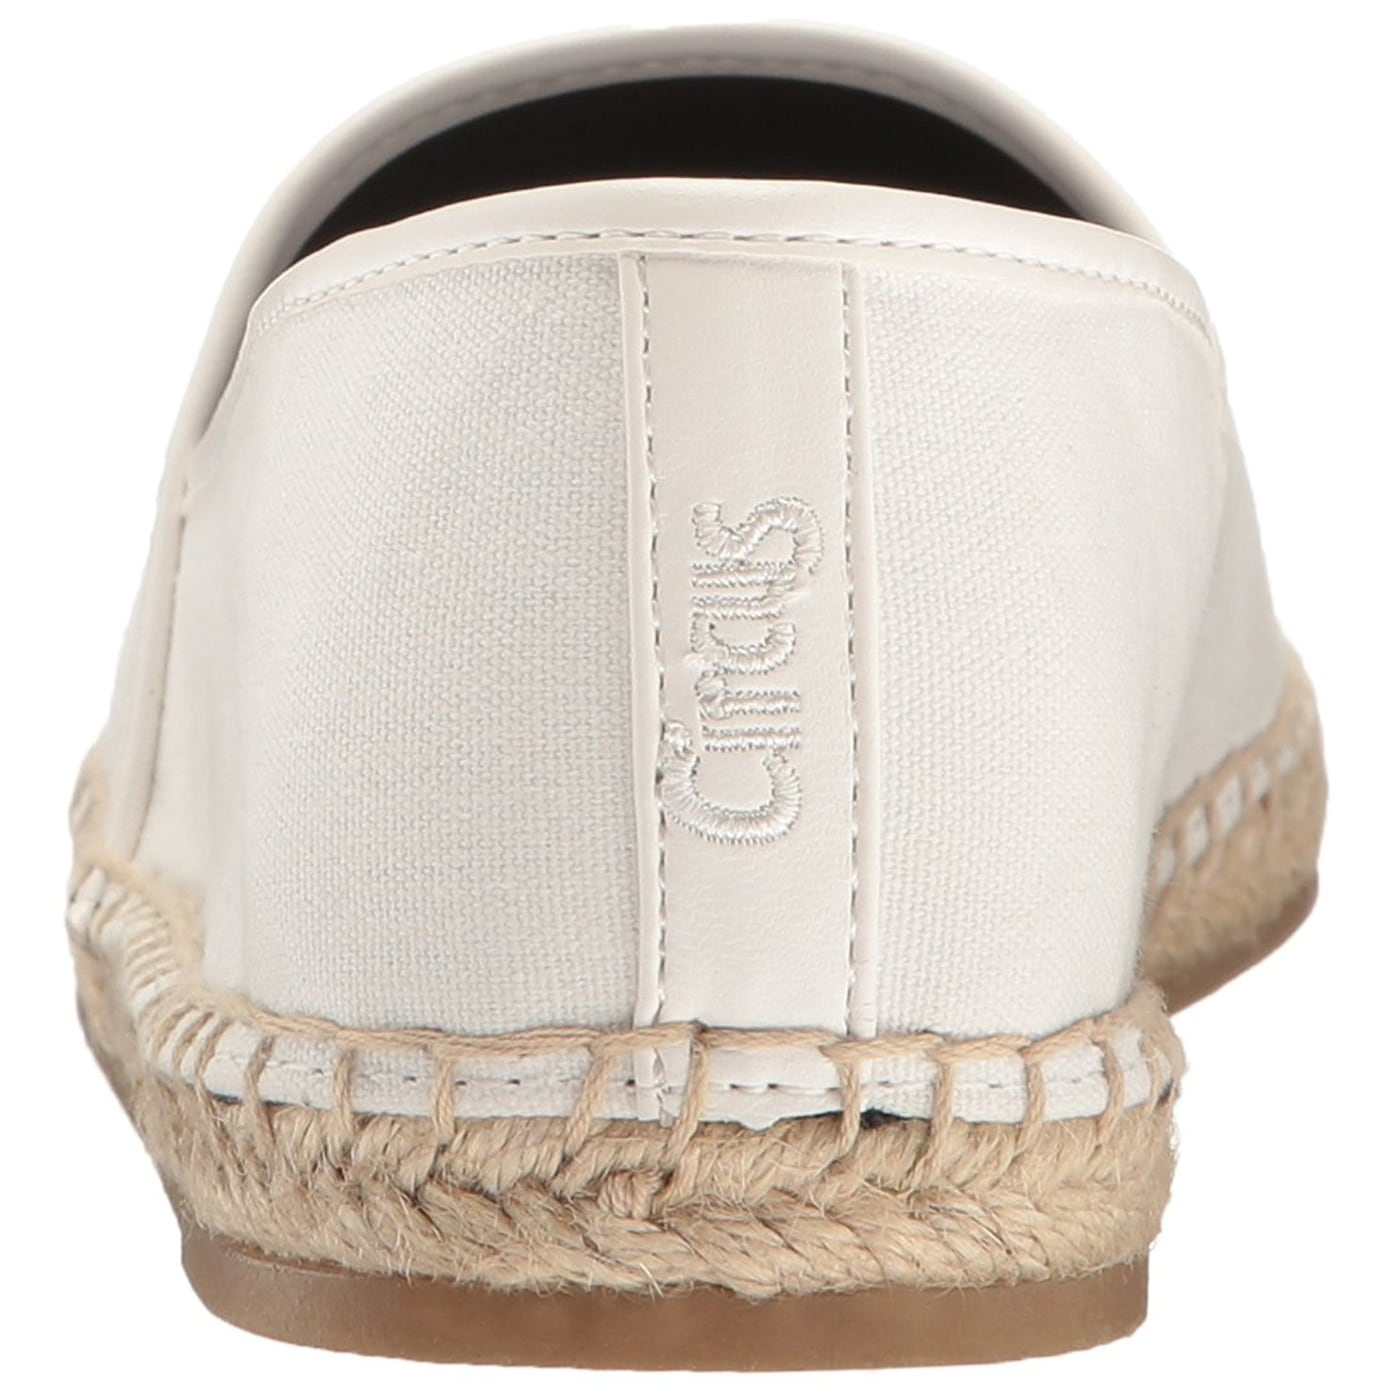 bc5765f732ad Shop Circus by Sam Edelman Womens Leni-15 Fabric Closed Toe Espadrille  Flats - On Sale - Free Shipping On Orders Over  45 - Overstock.com -  17755856